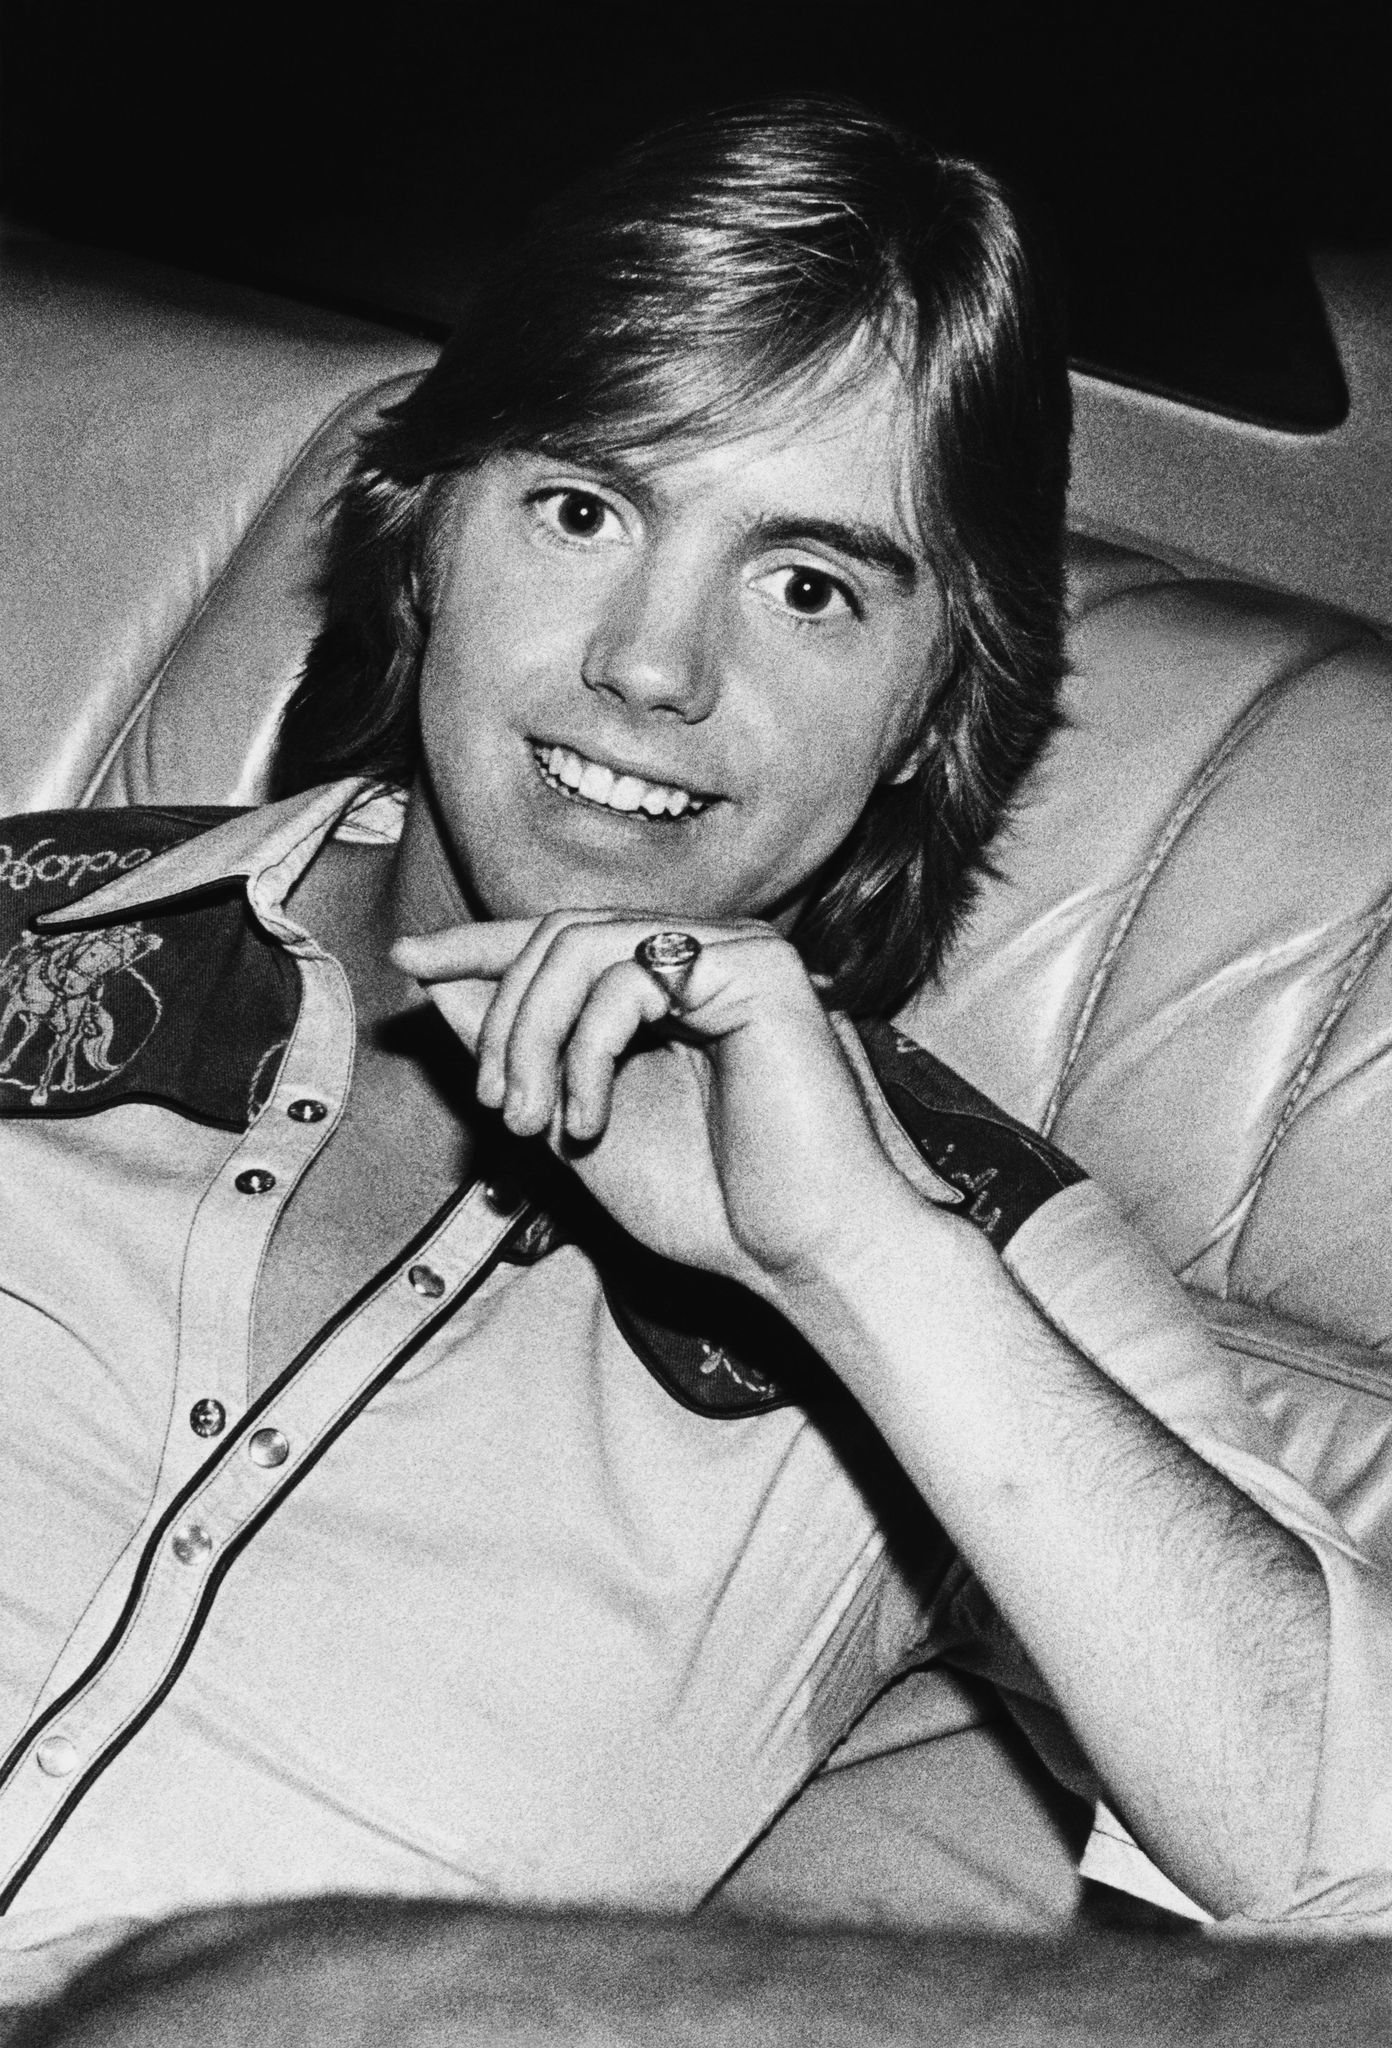 Teen idol singing sensation and son of actress Shirley Jones, Shaun Cassidy | Getty Images